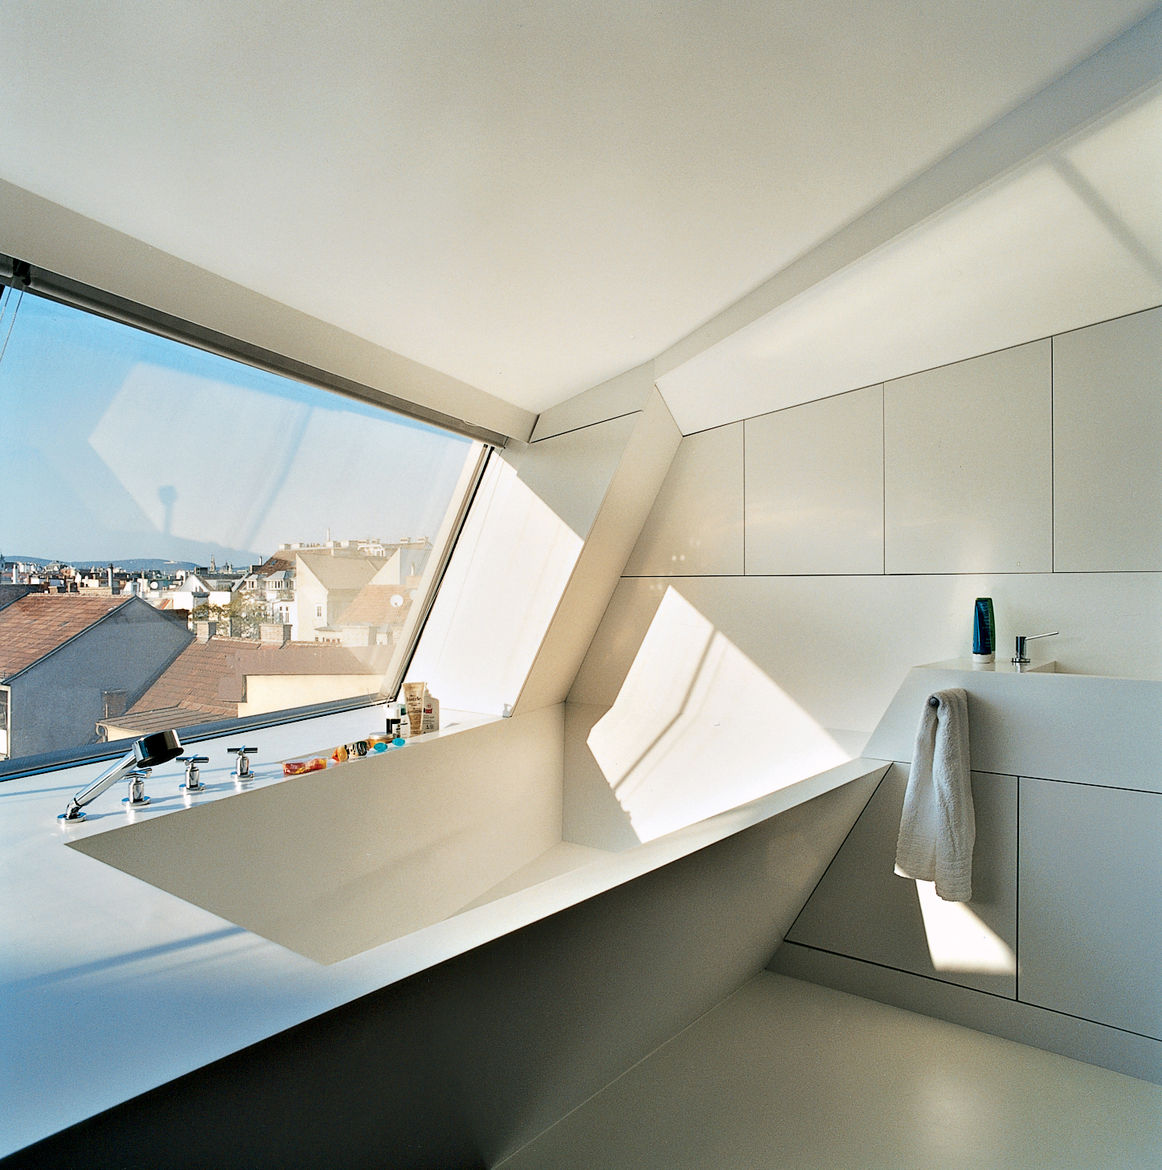 The cavity for the bathtub is part of the same continuous form-world as House Ray 1's sloping roofscape. The white tub is made from Corian; the faucet is by Dornbracht.